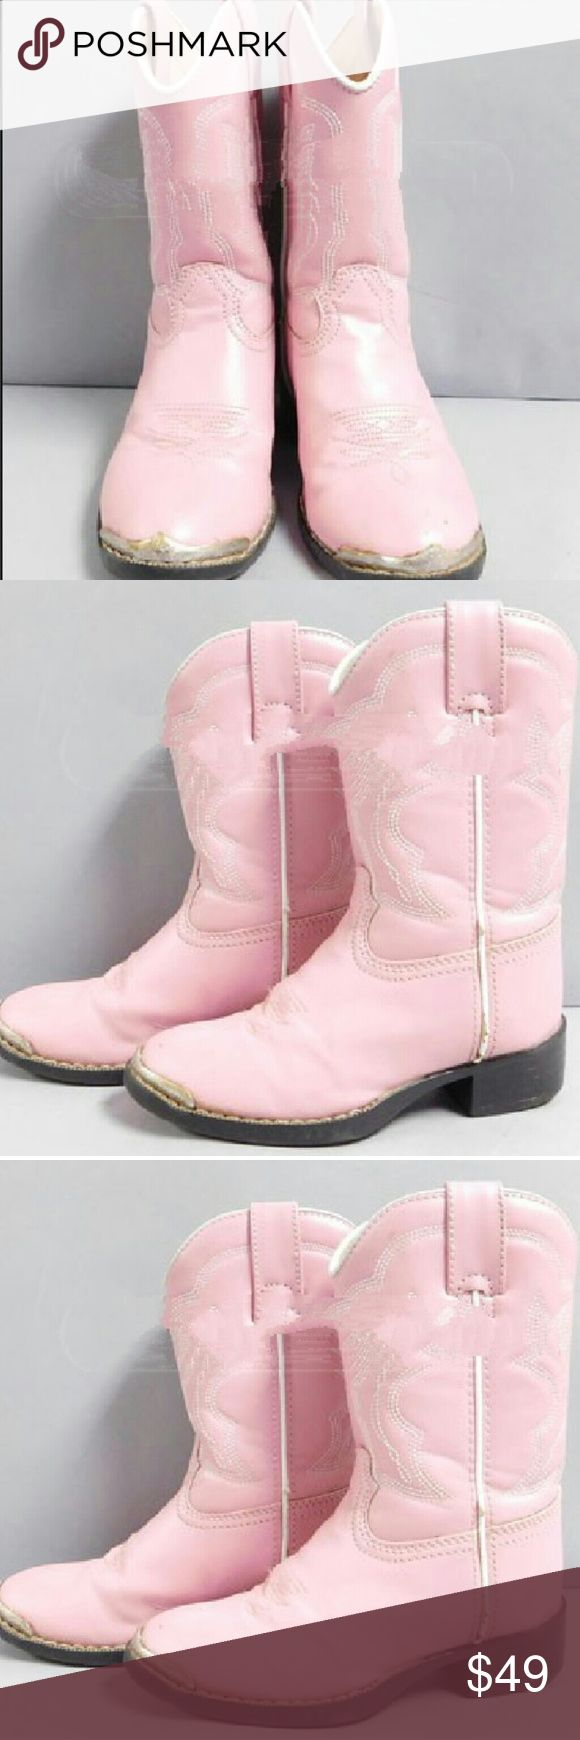 Durango Cowgirl Boots Size 11 Pink Pink girl cowboy boots Size 11 Durango Shoes